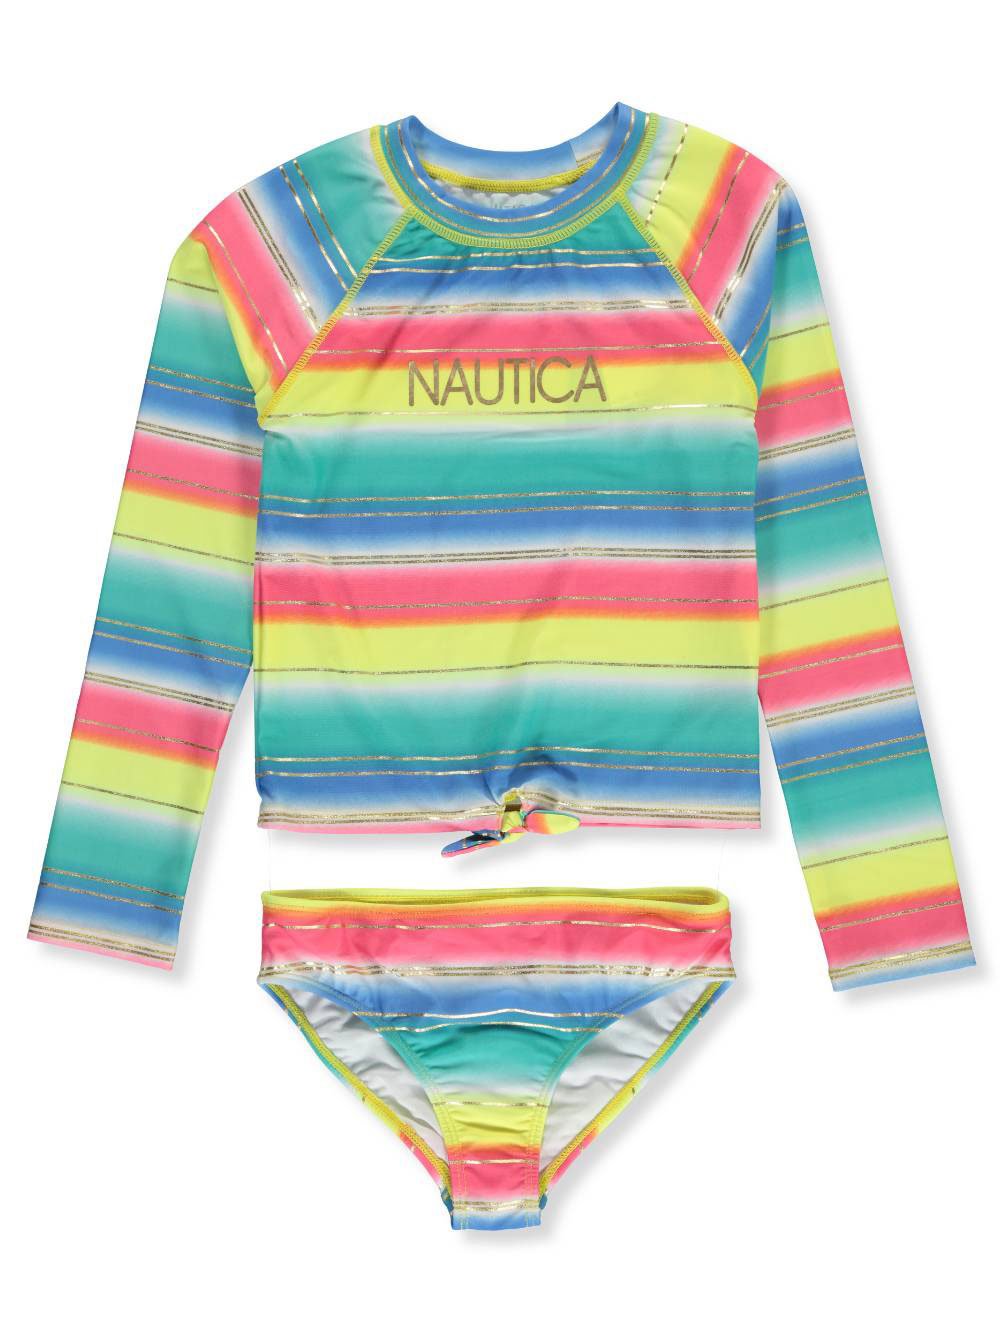 699aa9de2a Nautica Girls' 2-Piece Swim Set